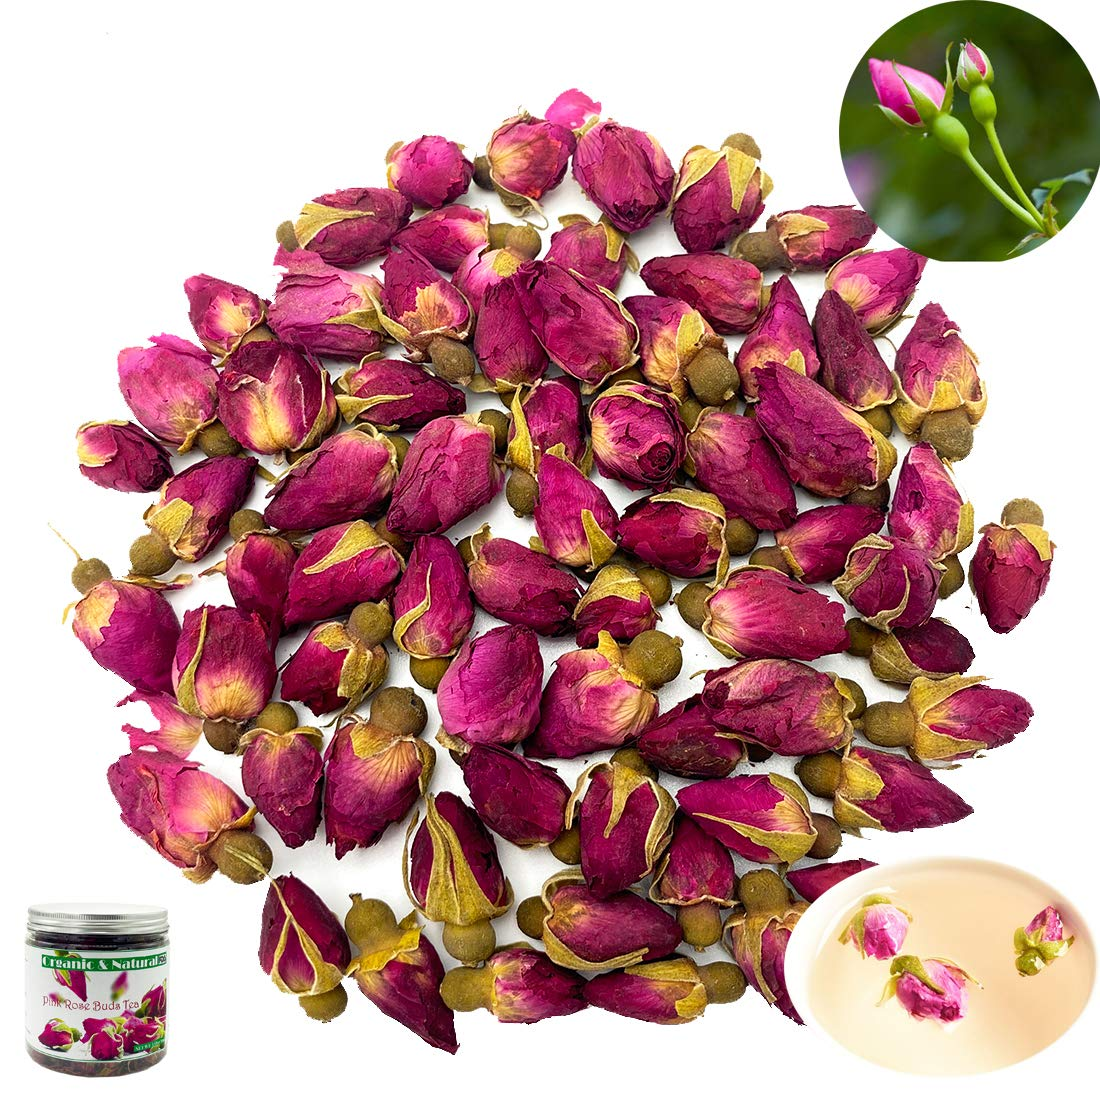 Organic Dried Pink Rose Buds Tea Flower, Edible Small Red Rose Buds and Petals Flower Loose Leaf Health Benefits Decaffeinated